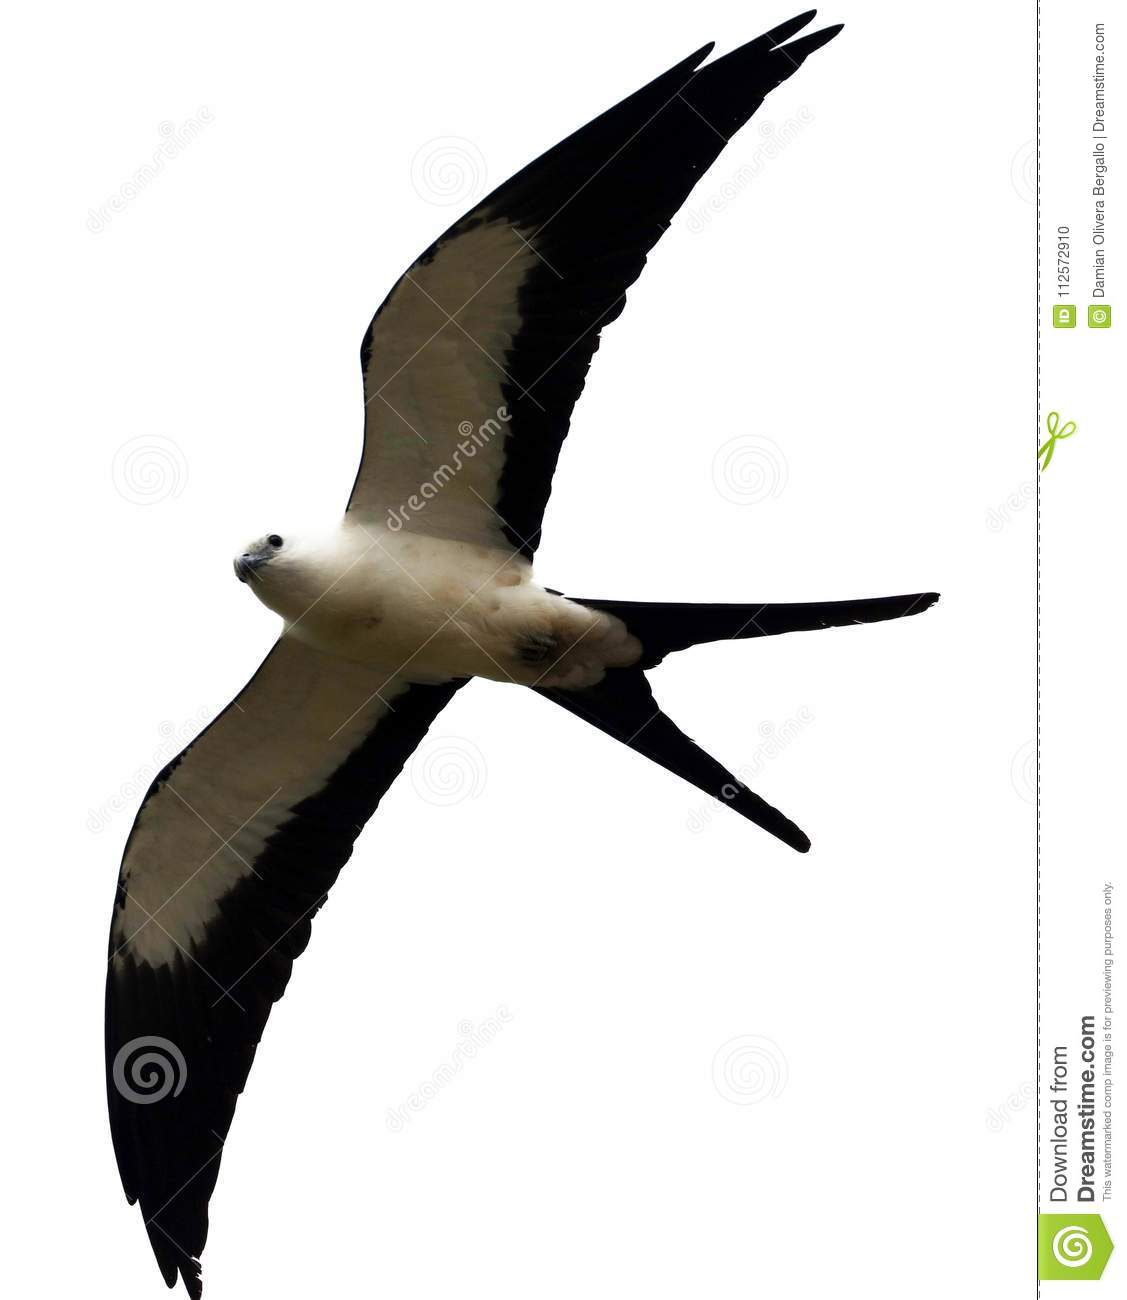 Swallow-tailed kite prey bird hunting in the skies of Costa Rica